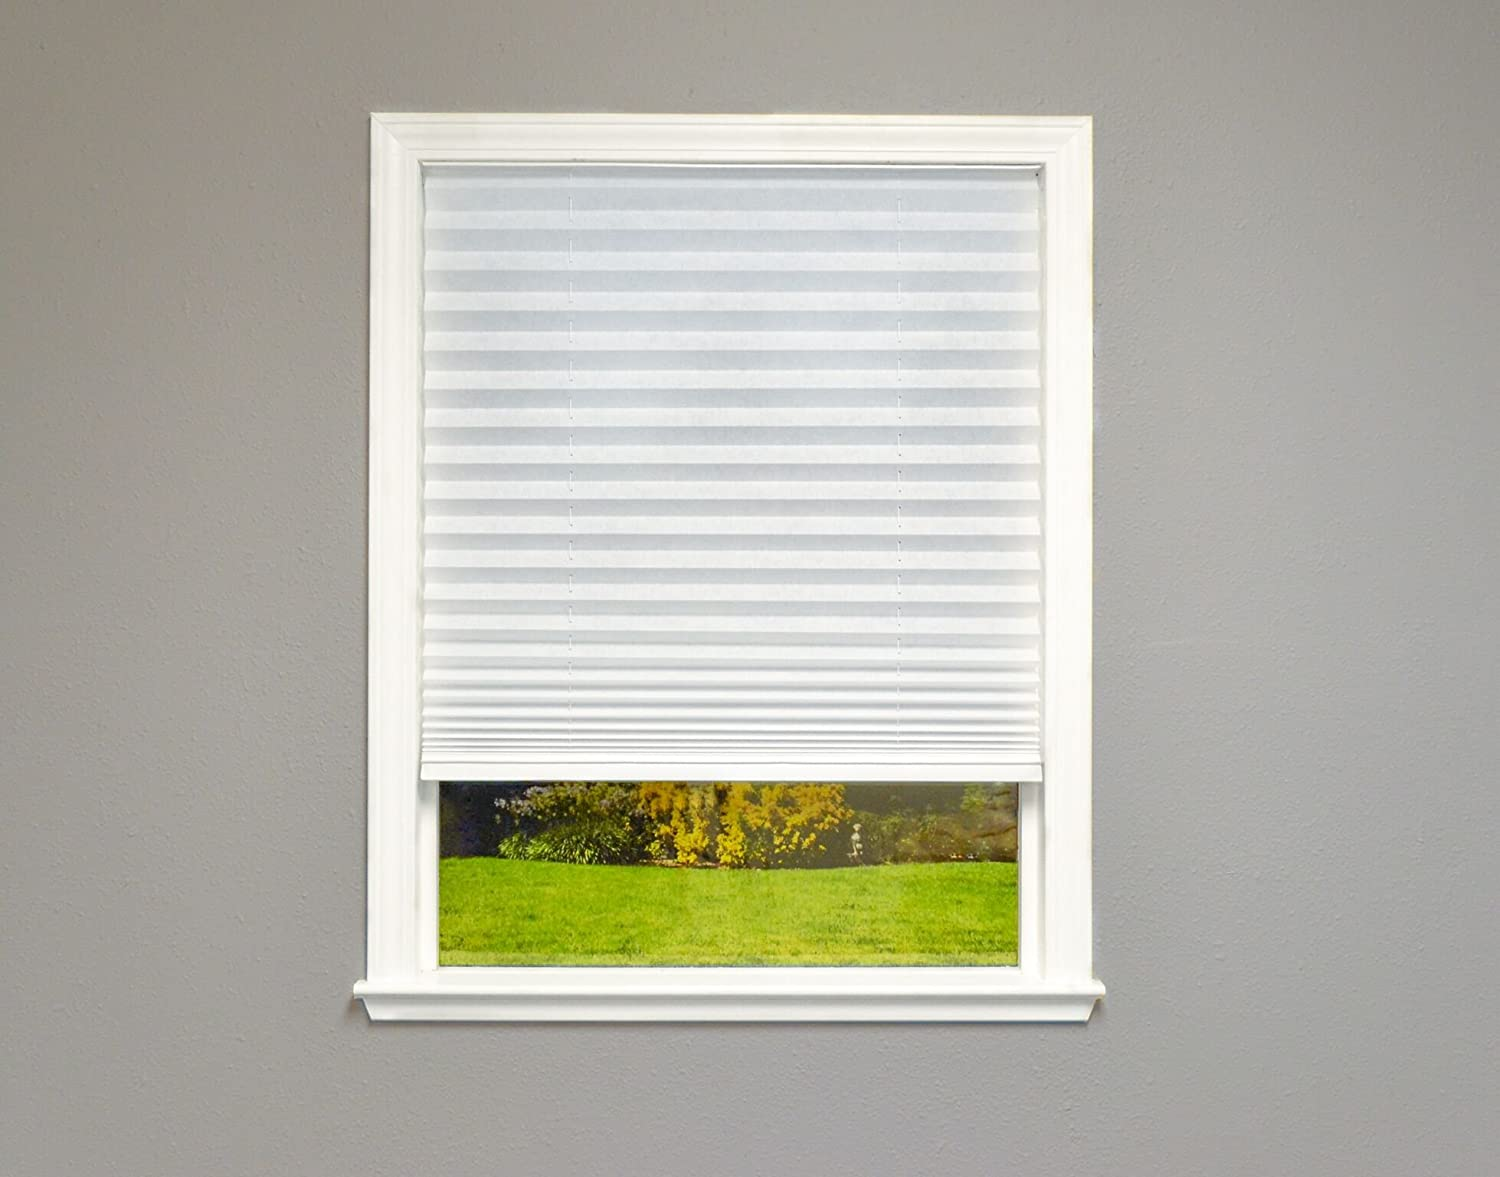 Easy Lift Trim-At-Home Cordless Pleated Light Filtering Fabric White, 36 x 64-Inch, (Fits windows 19-36) Redi Shade Inc. 750227506068